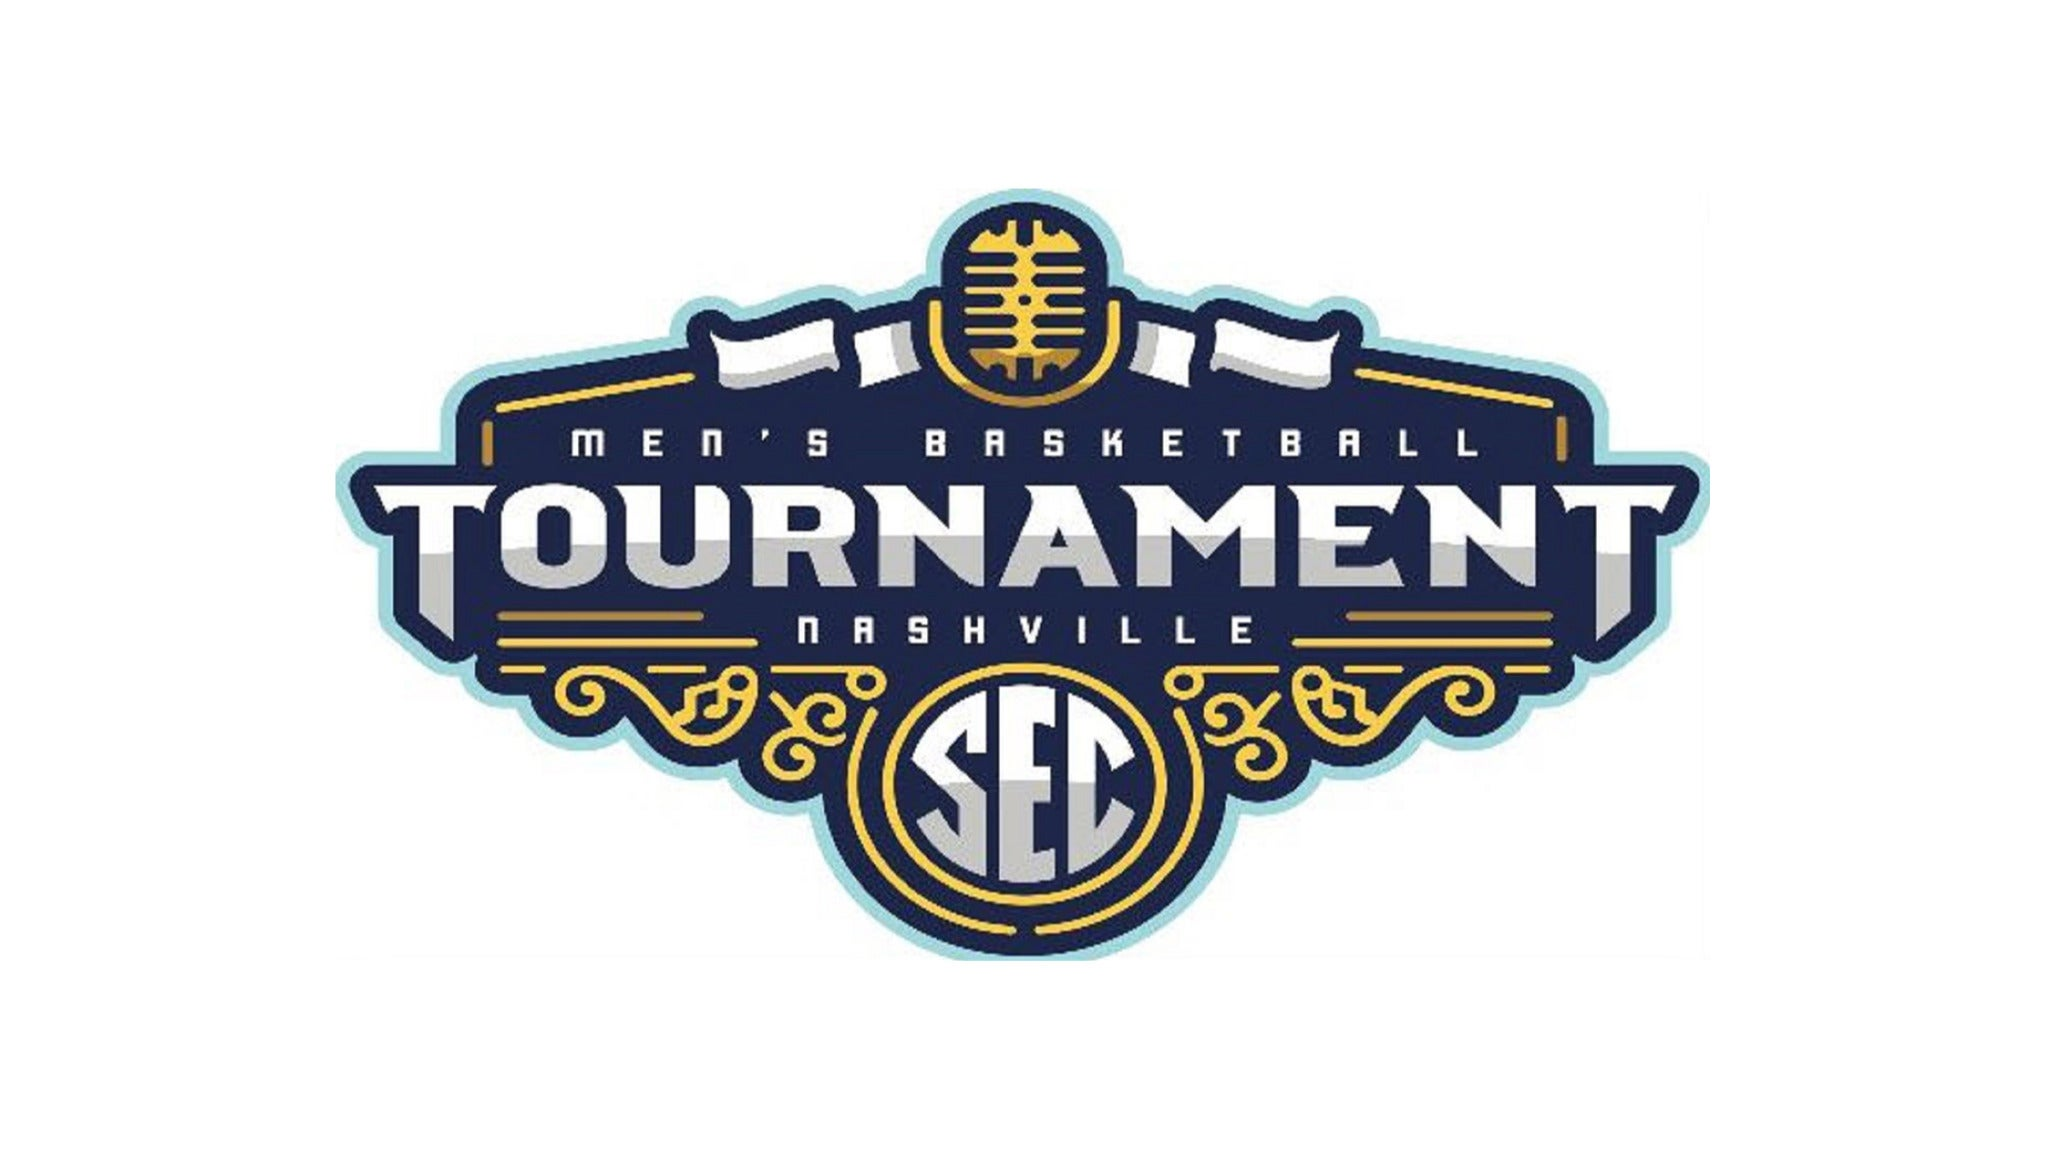 2019 SEC Men's Basketball Tournament Session 1 Only